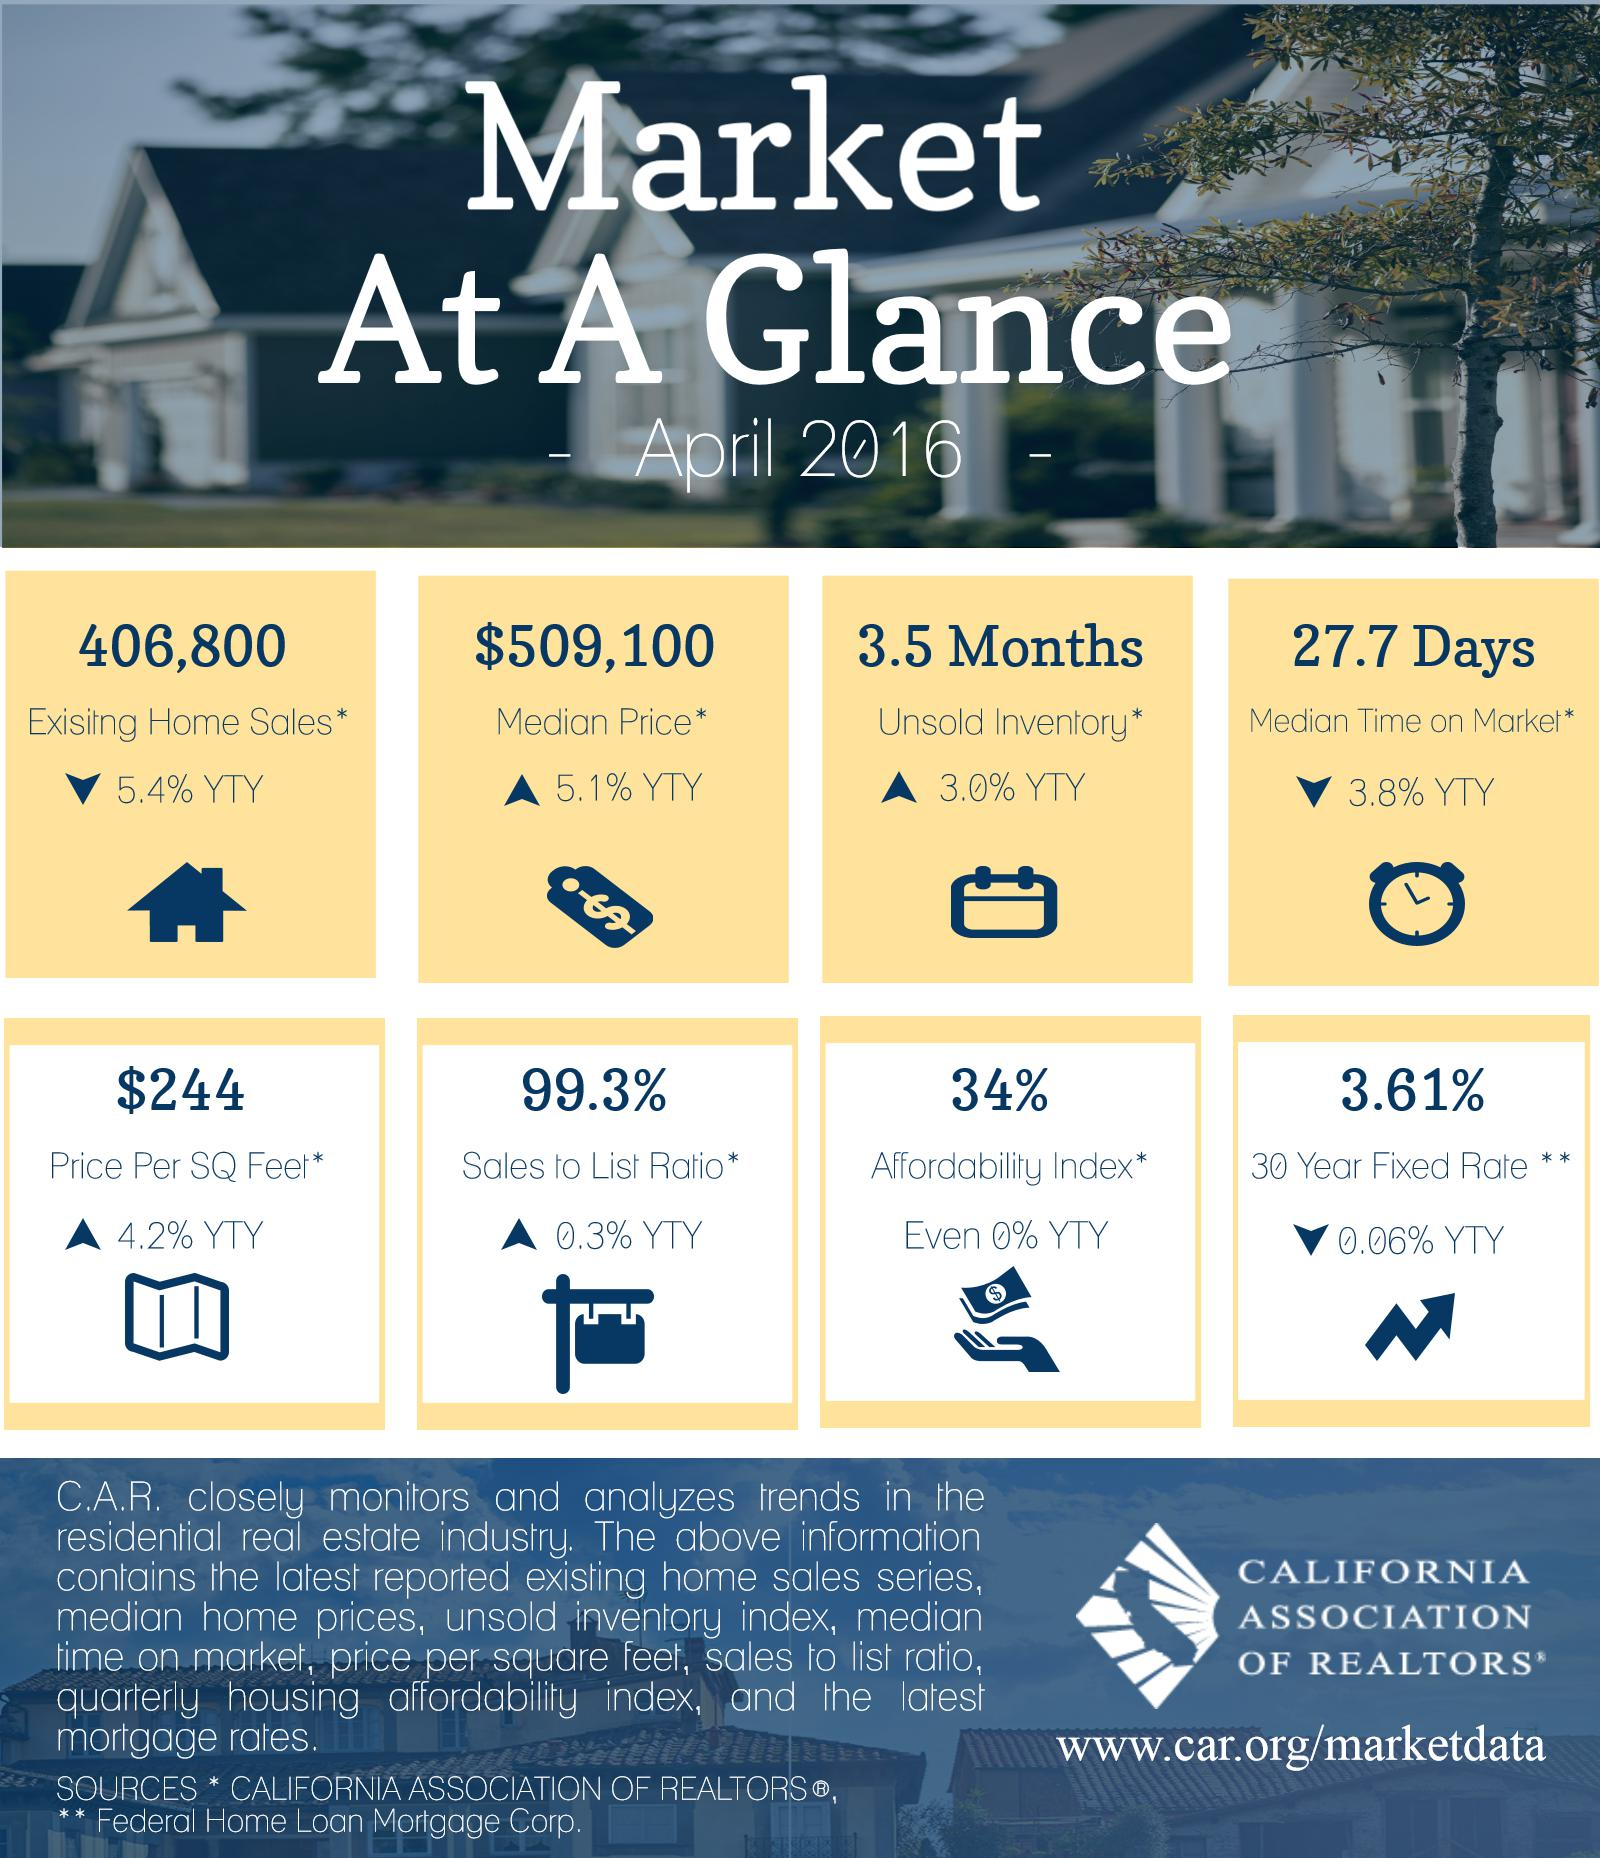 Market at a Glance - April 2016